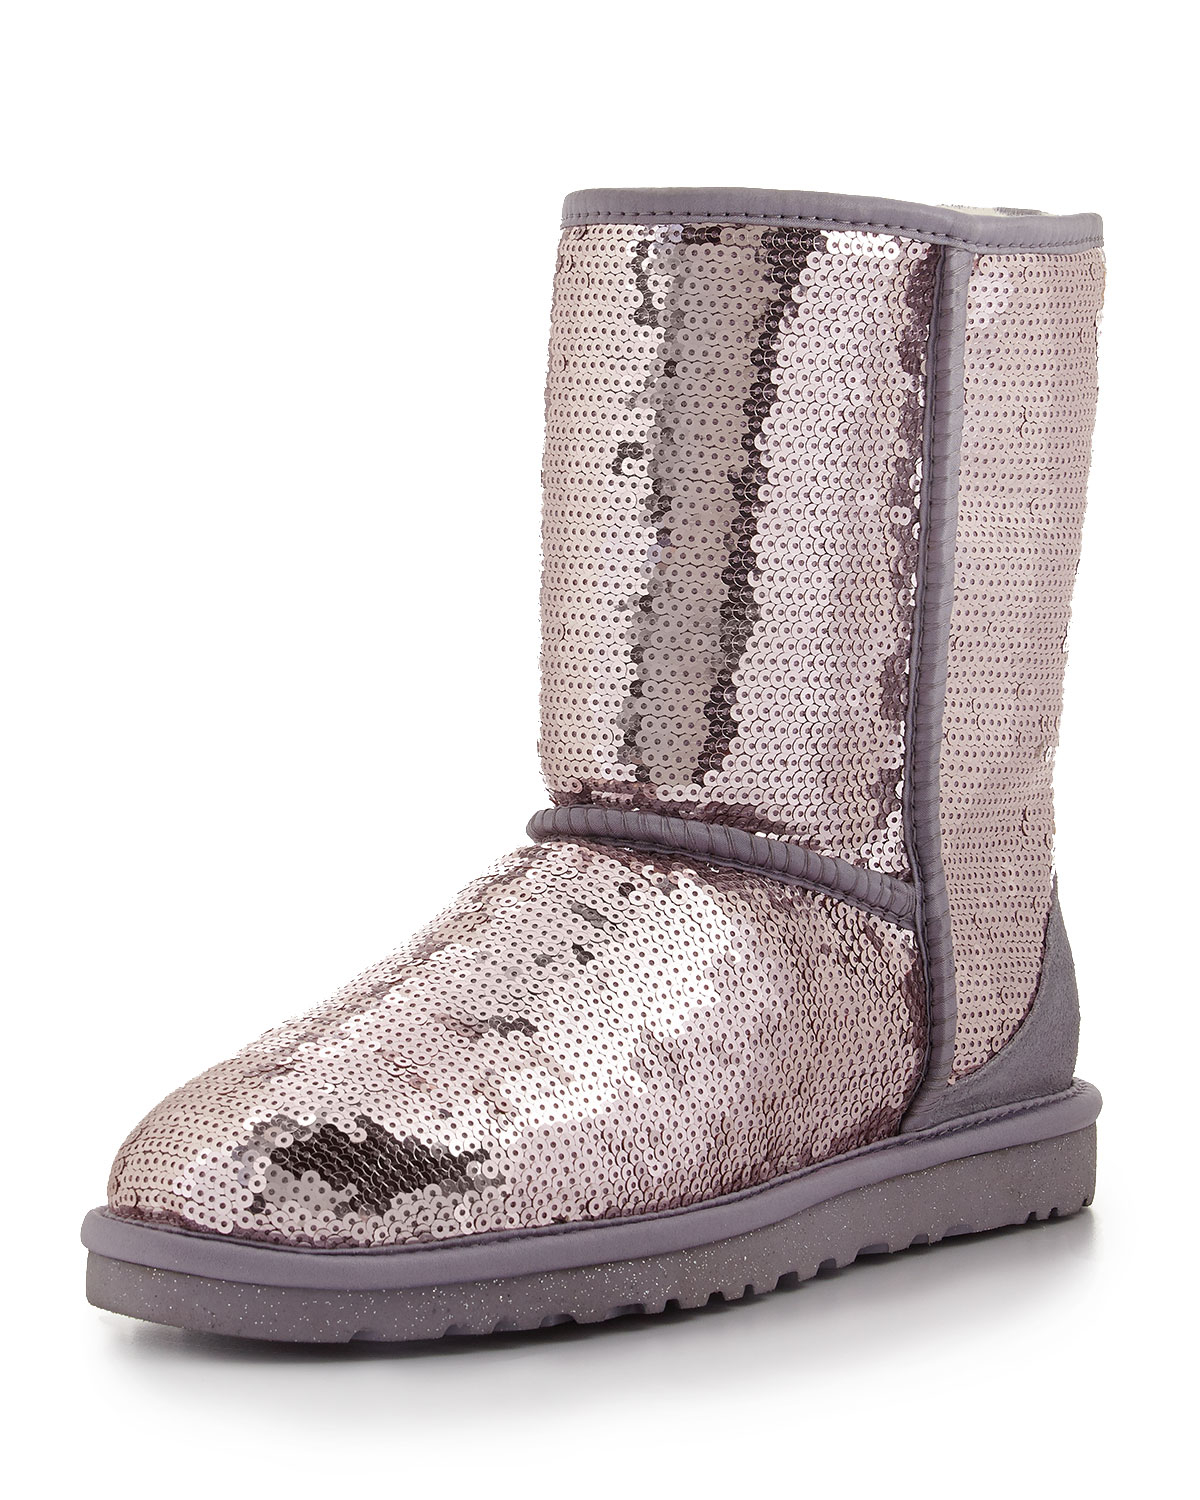 ugg sparkles sequin boot in purple heathered lilac